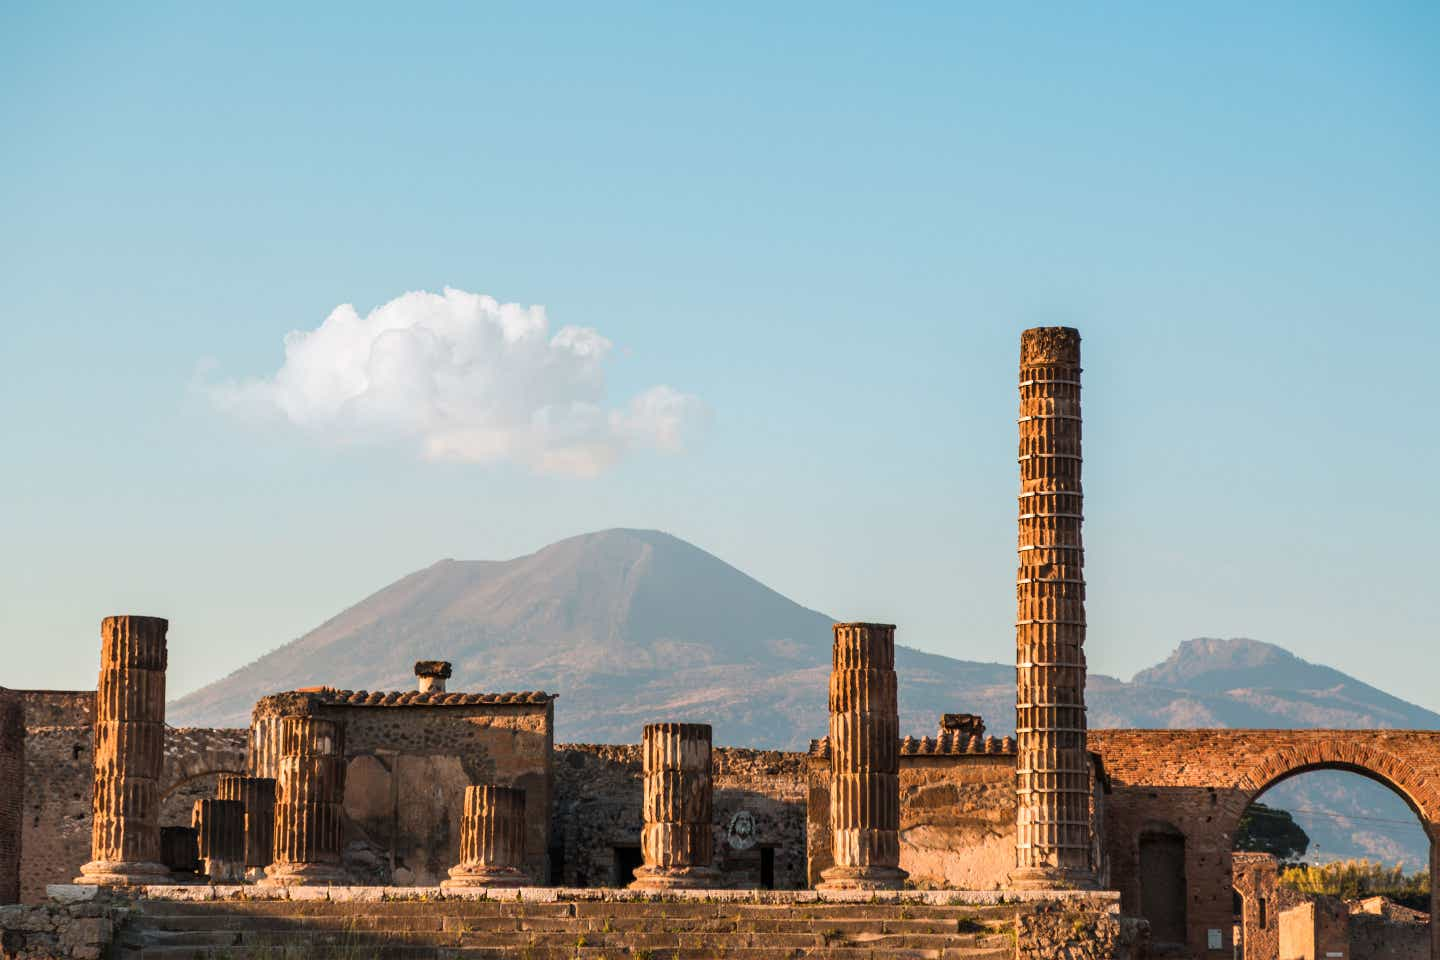 Mt. Vesuvius lurks in the background amongst the ruins of Pompeii.